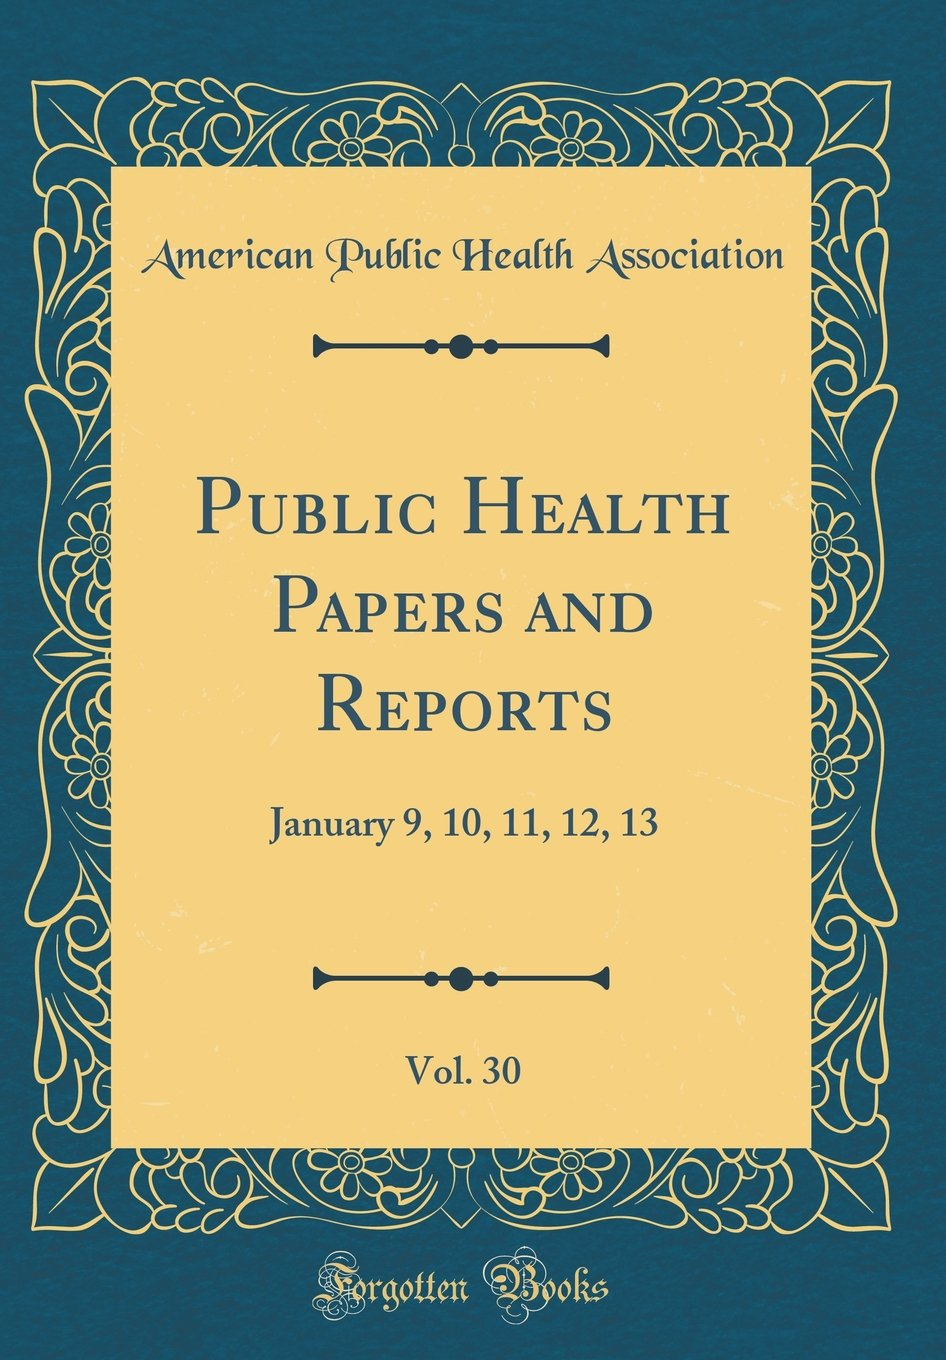 Public Health Papers and Reports, Vol. 30: January 9, 10, 11, 12, 13 (Classic Reprint) pdf